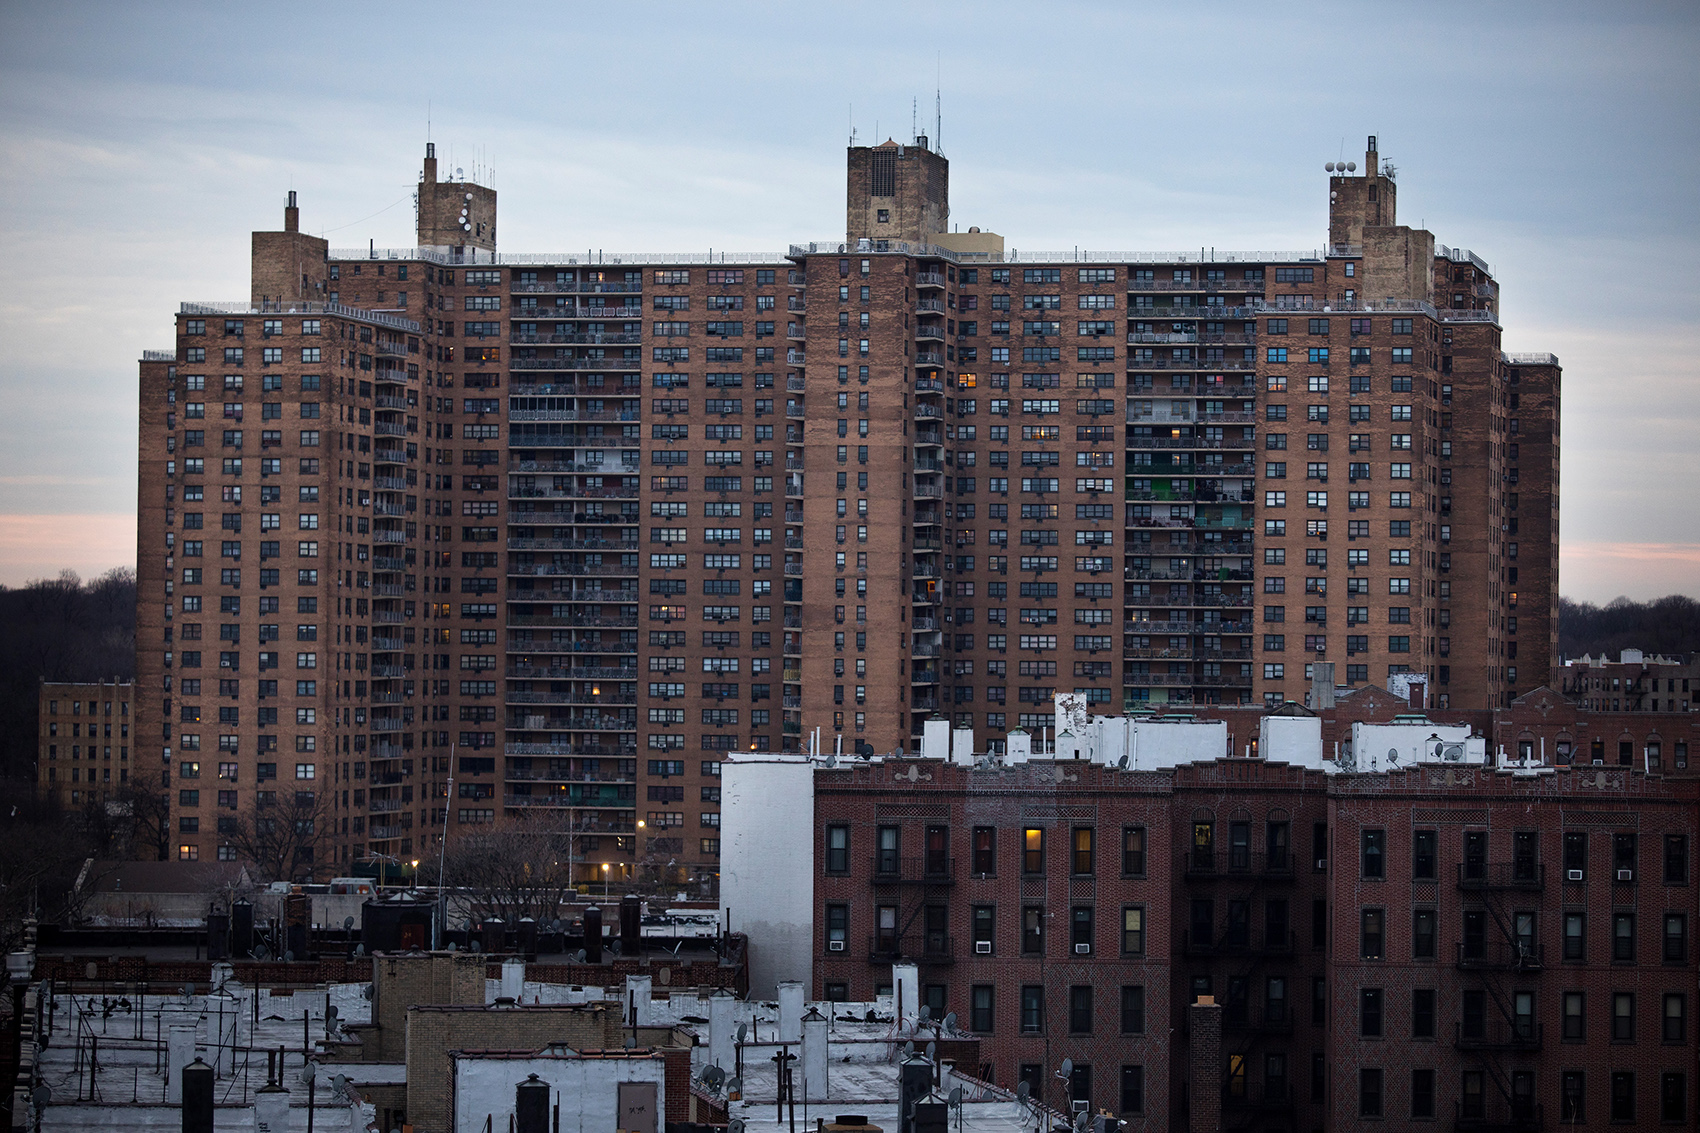 The view of the Ebbets Field Apartment complex. Ebbets Field Apartments opened in 1962 after the Brooklyn Dodgers moved to Los Angeles providing affordable housing for low income families.